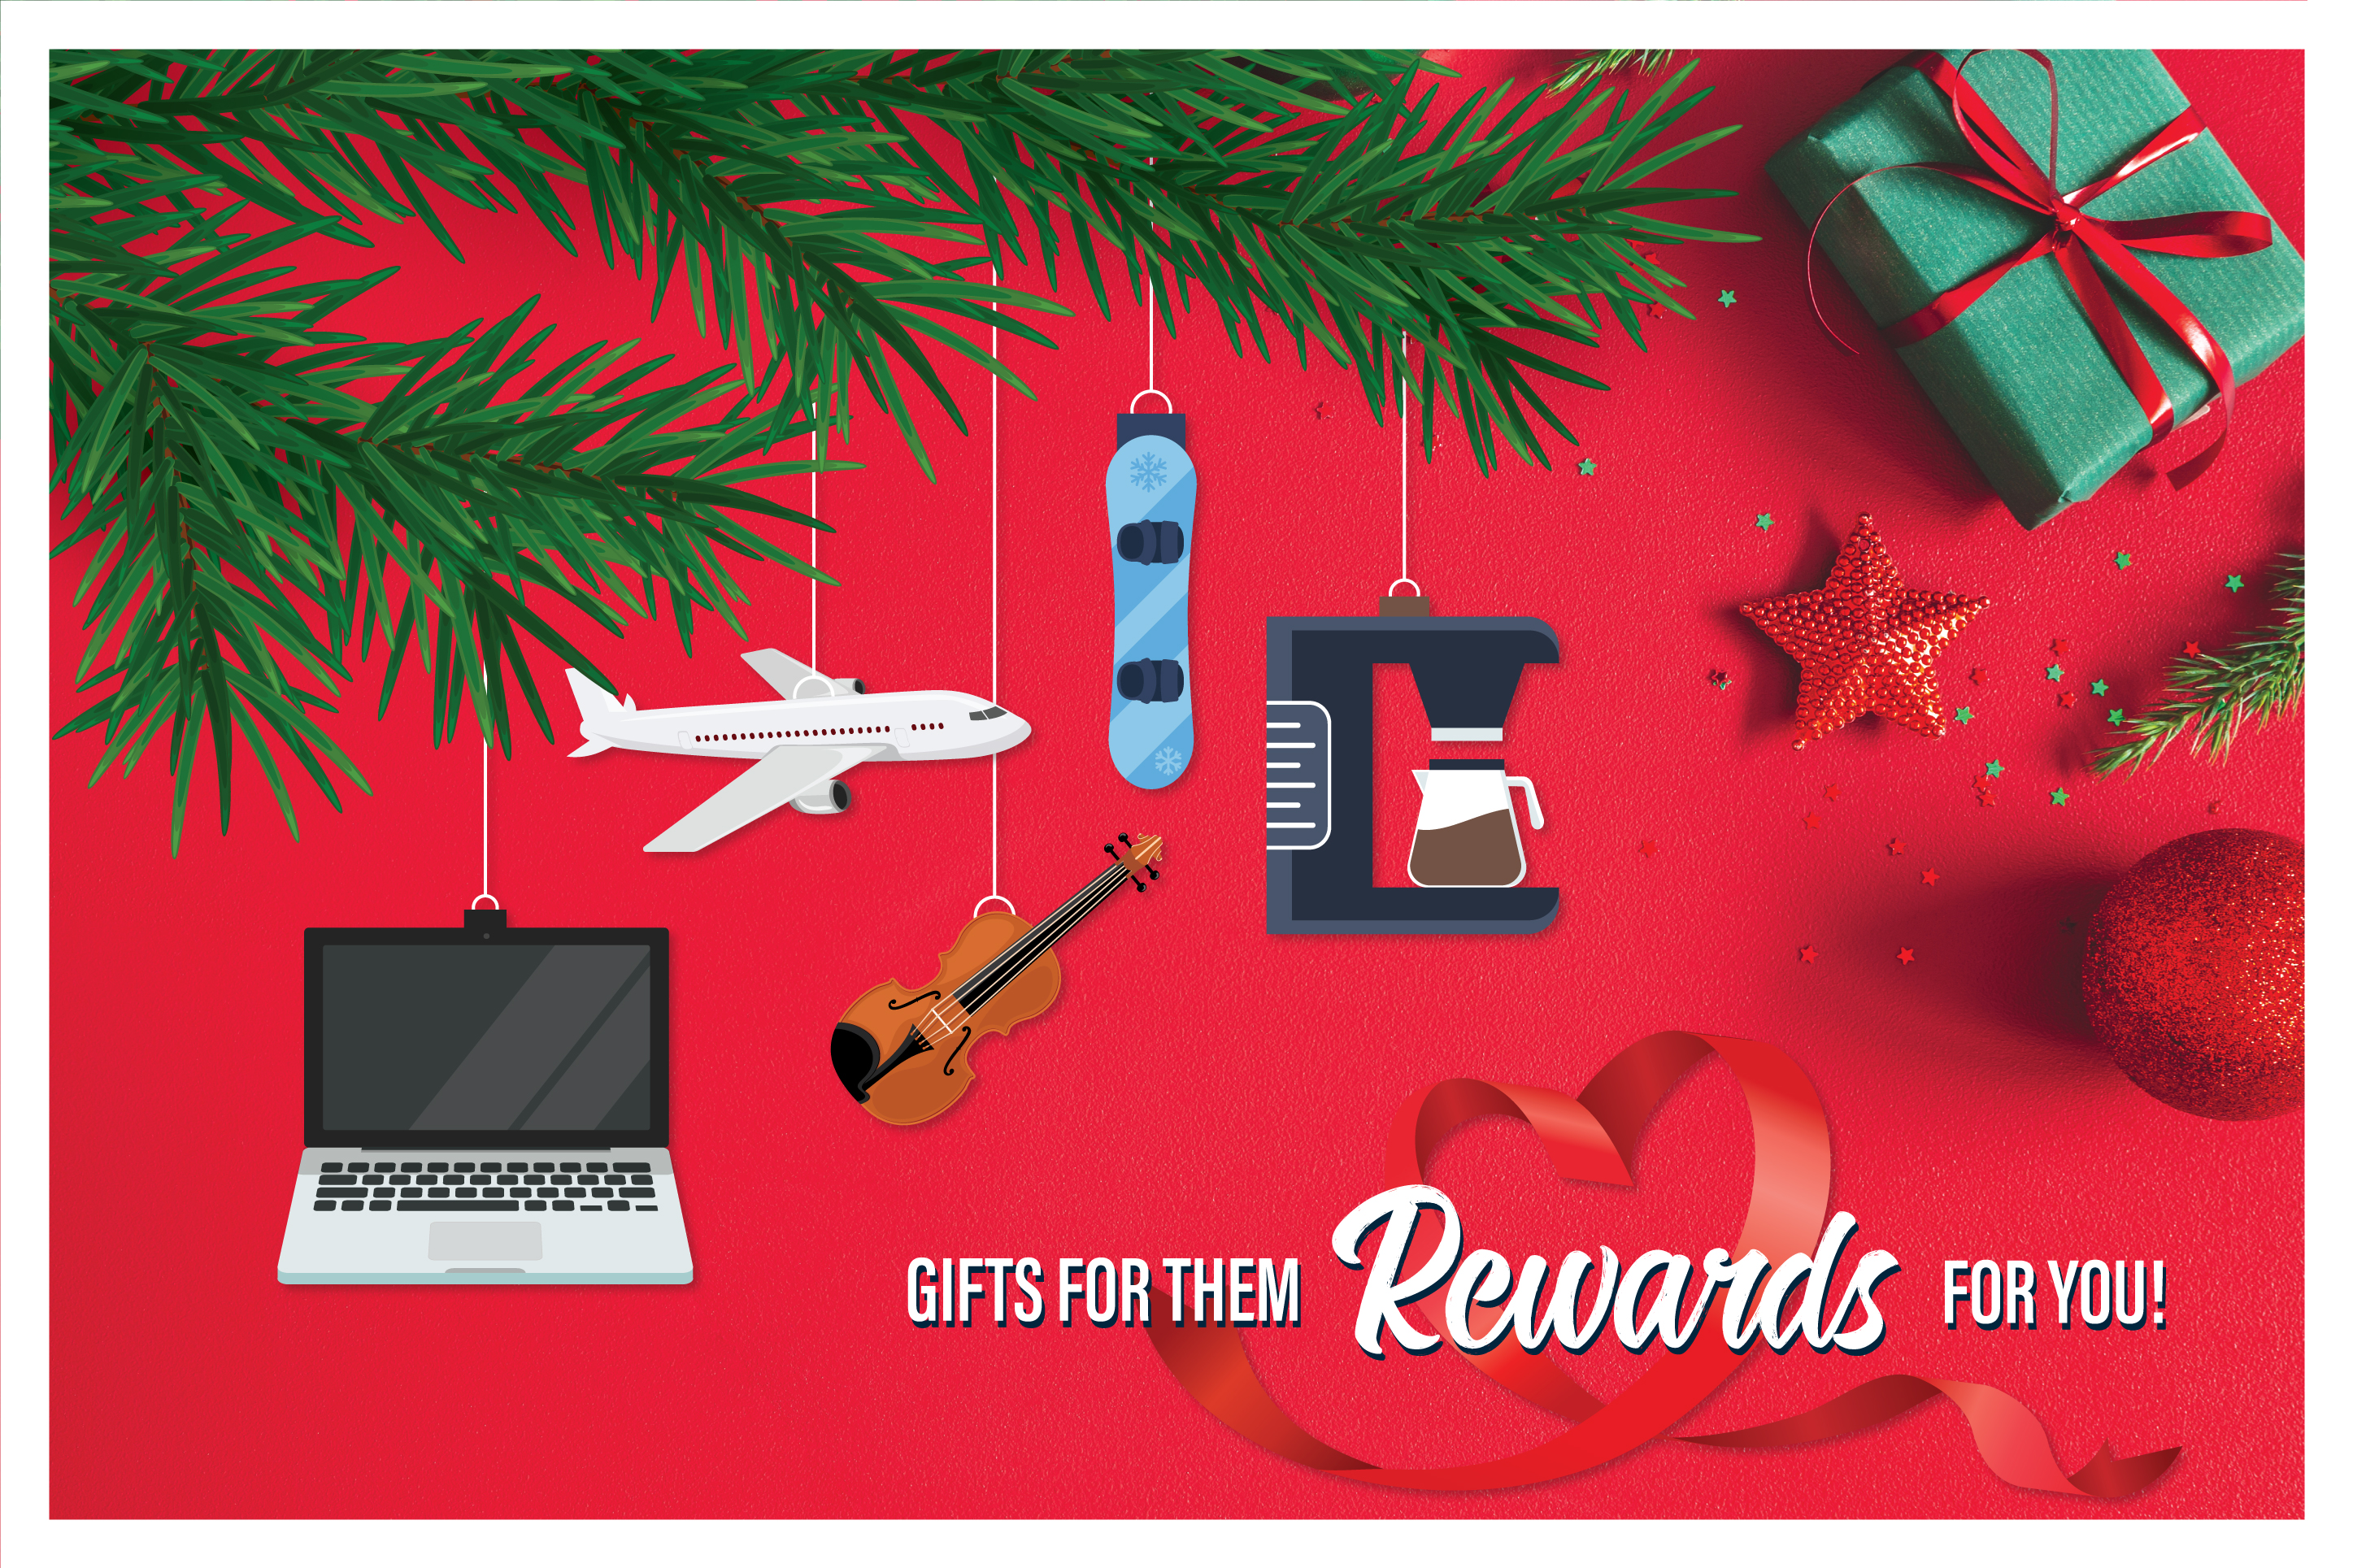 Treat Yourself with the Holiday Visa Rewards Card